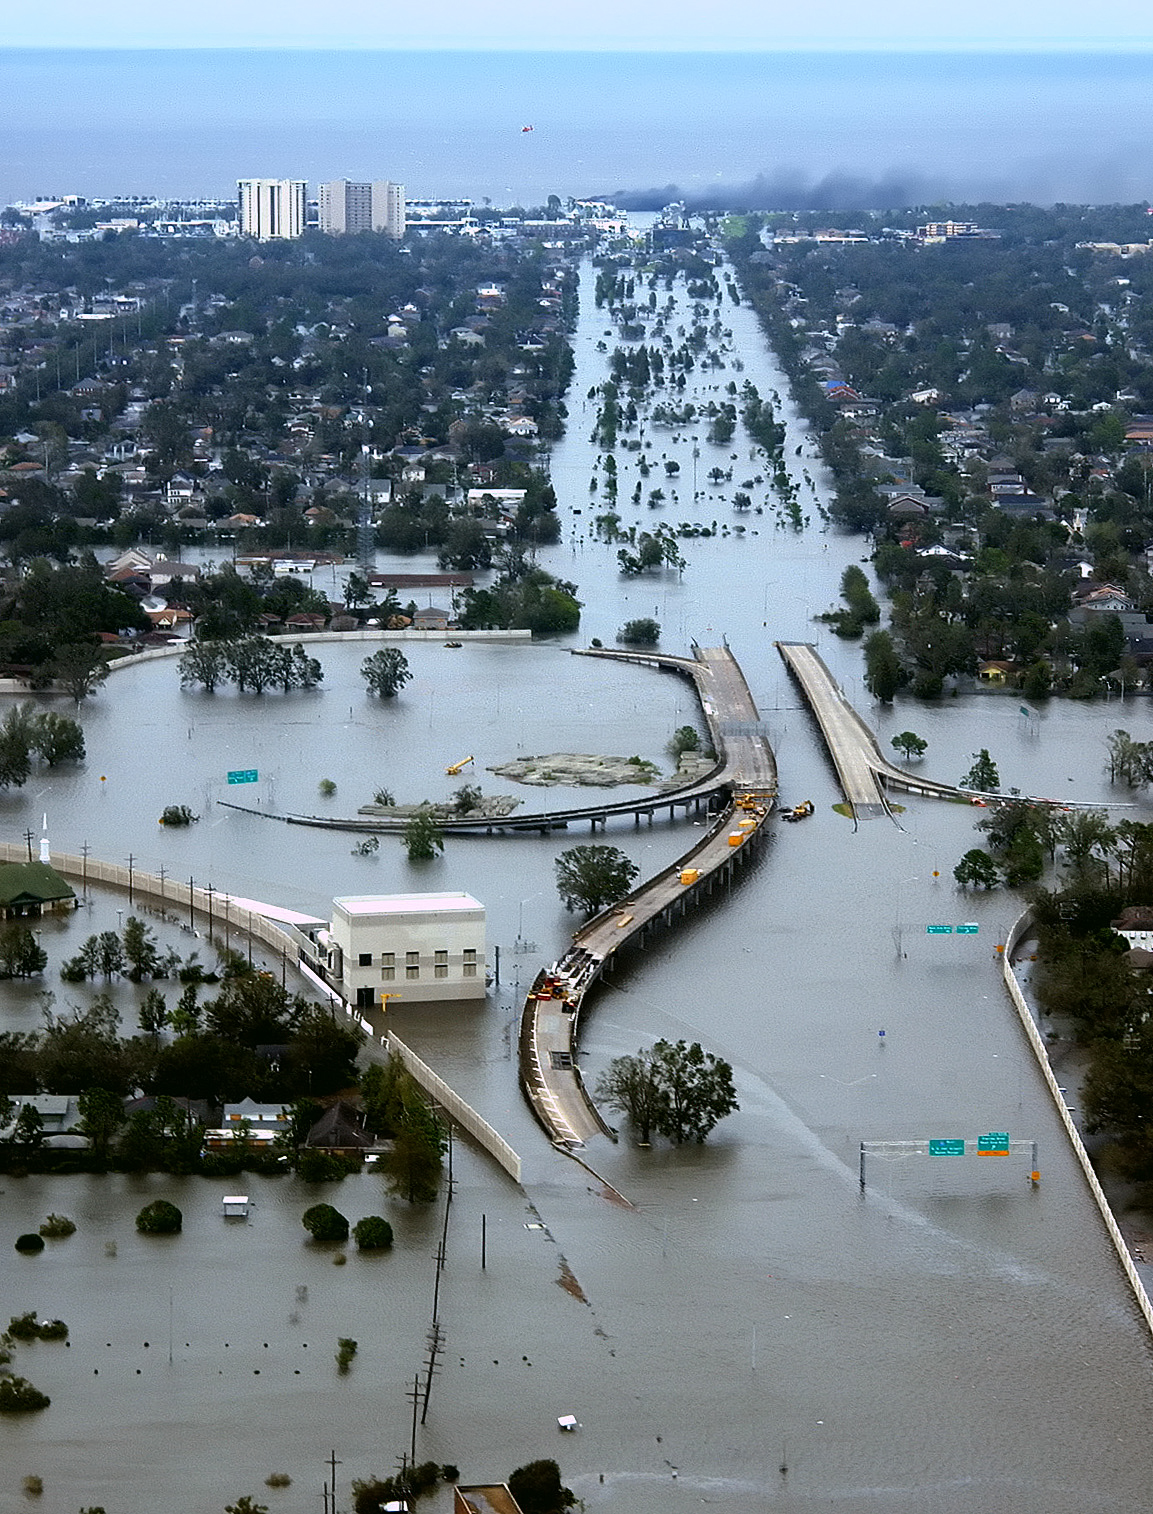 New Orleans flooding caused by 60 kt. winds, 10-14 ft. storm surge ...